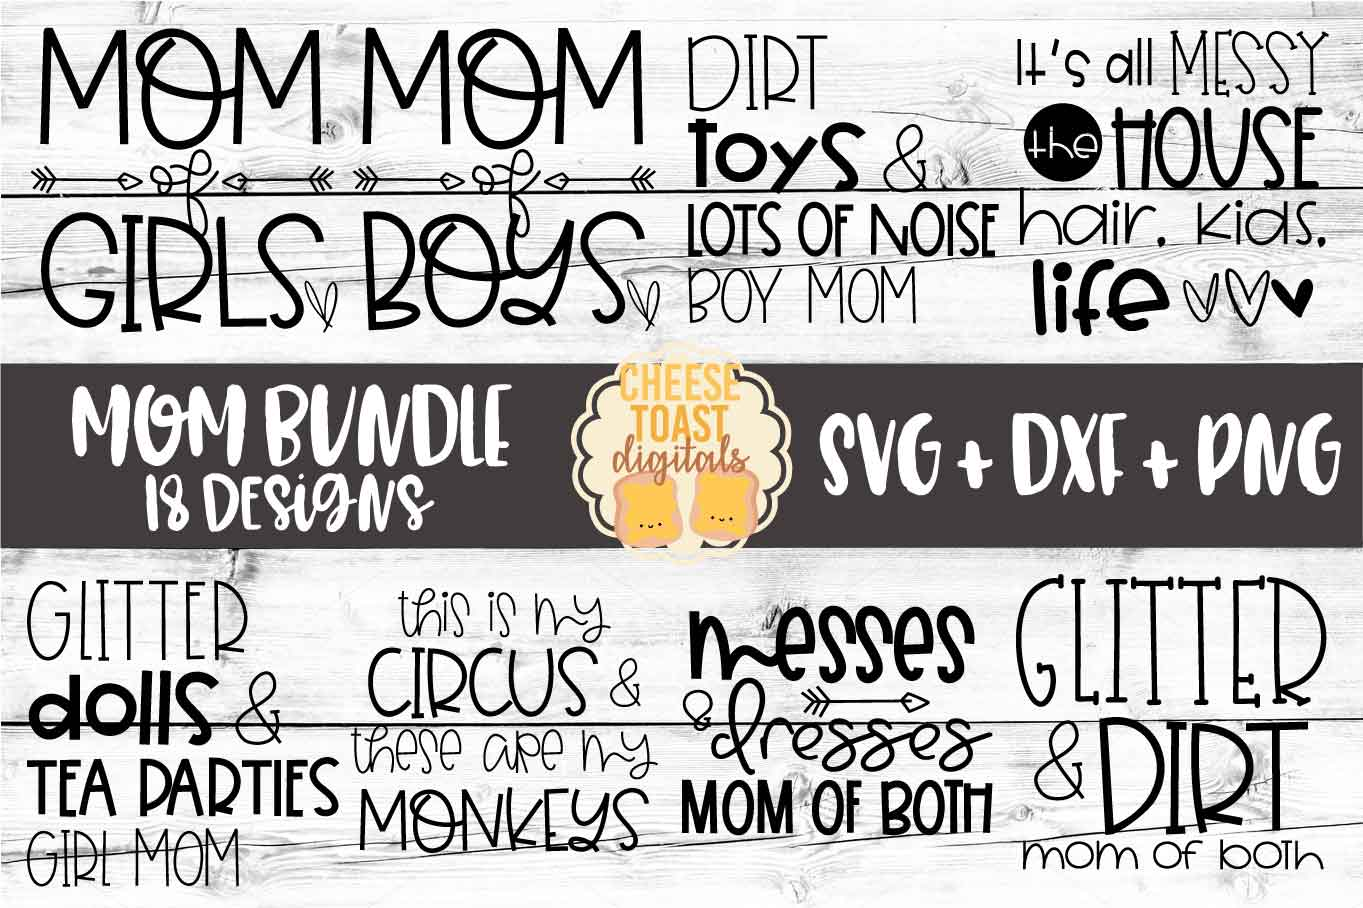 Mom Bundle - 18 Designs SVG PNG DXF Cut Files example image 1